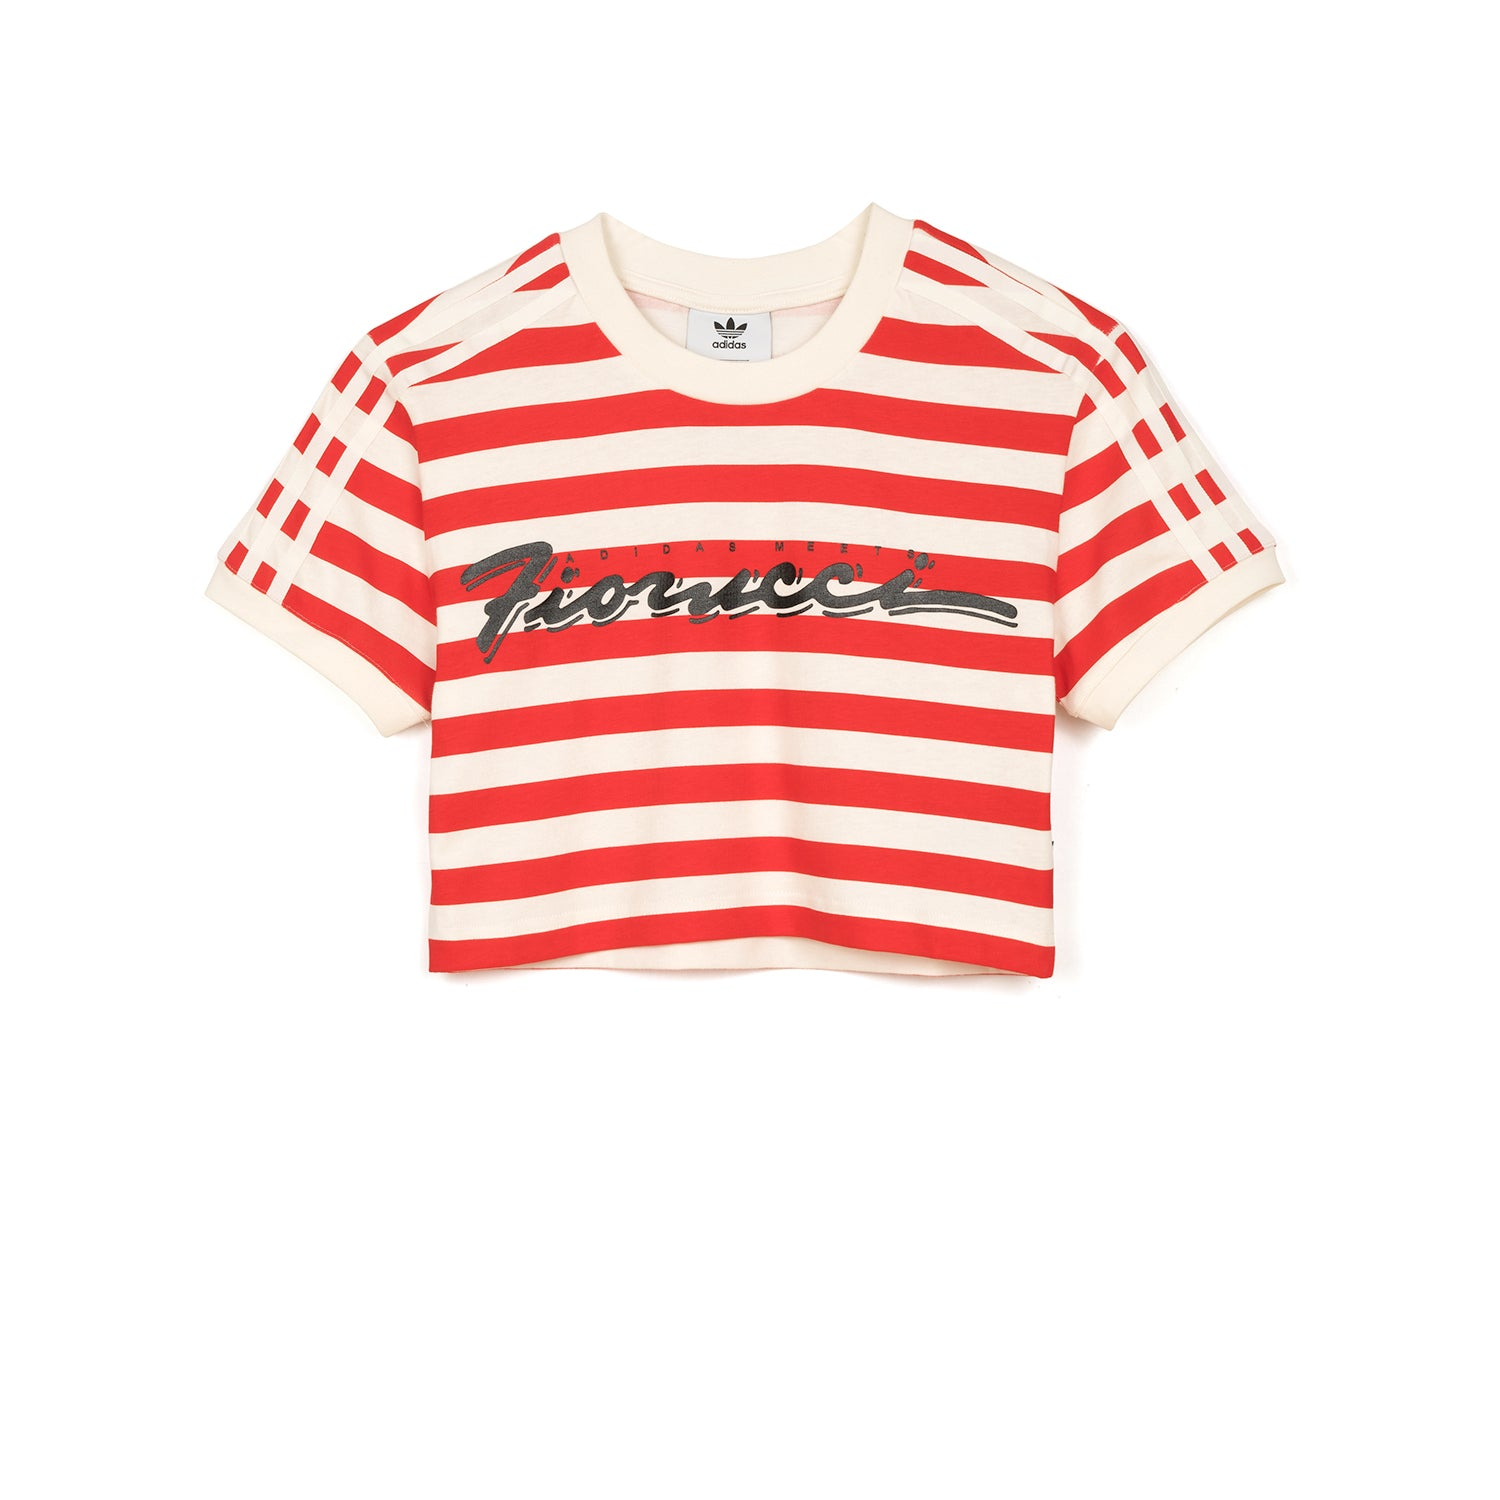 86891254595 adidas Originals x Fiorucci W Stripe Crop T-Shirt Off White – Concrete